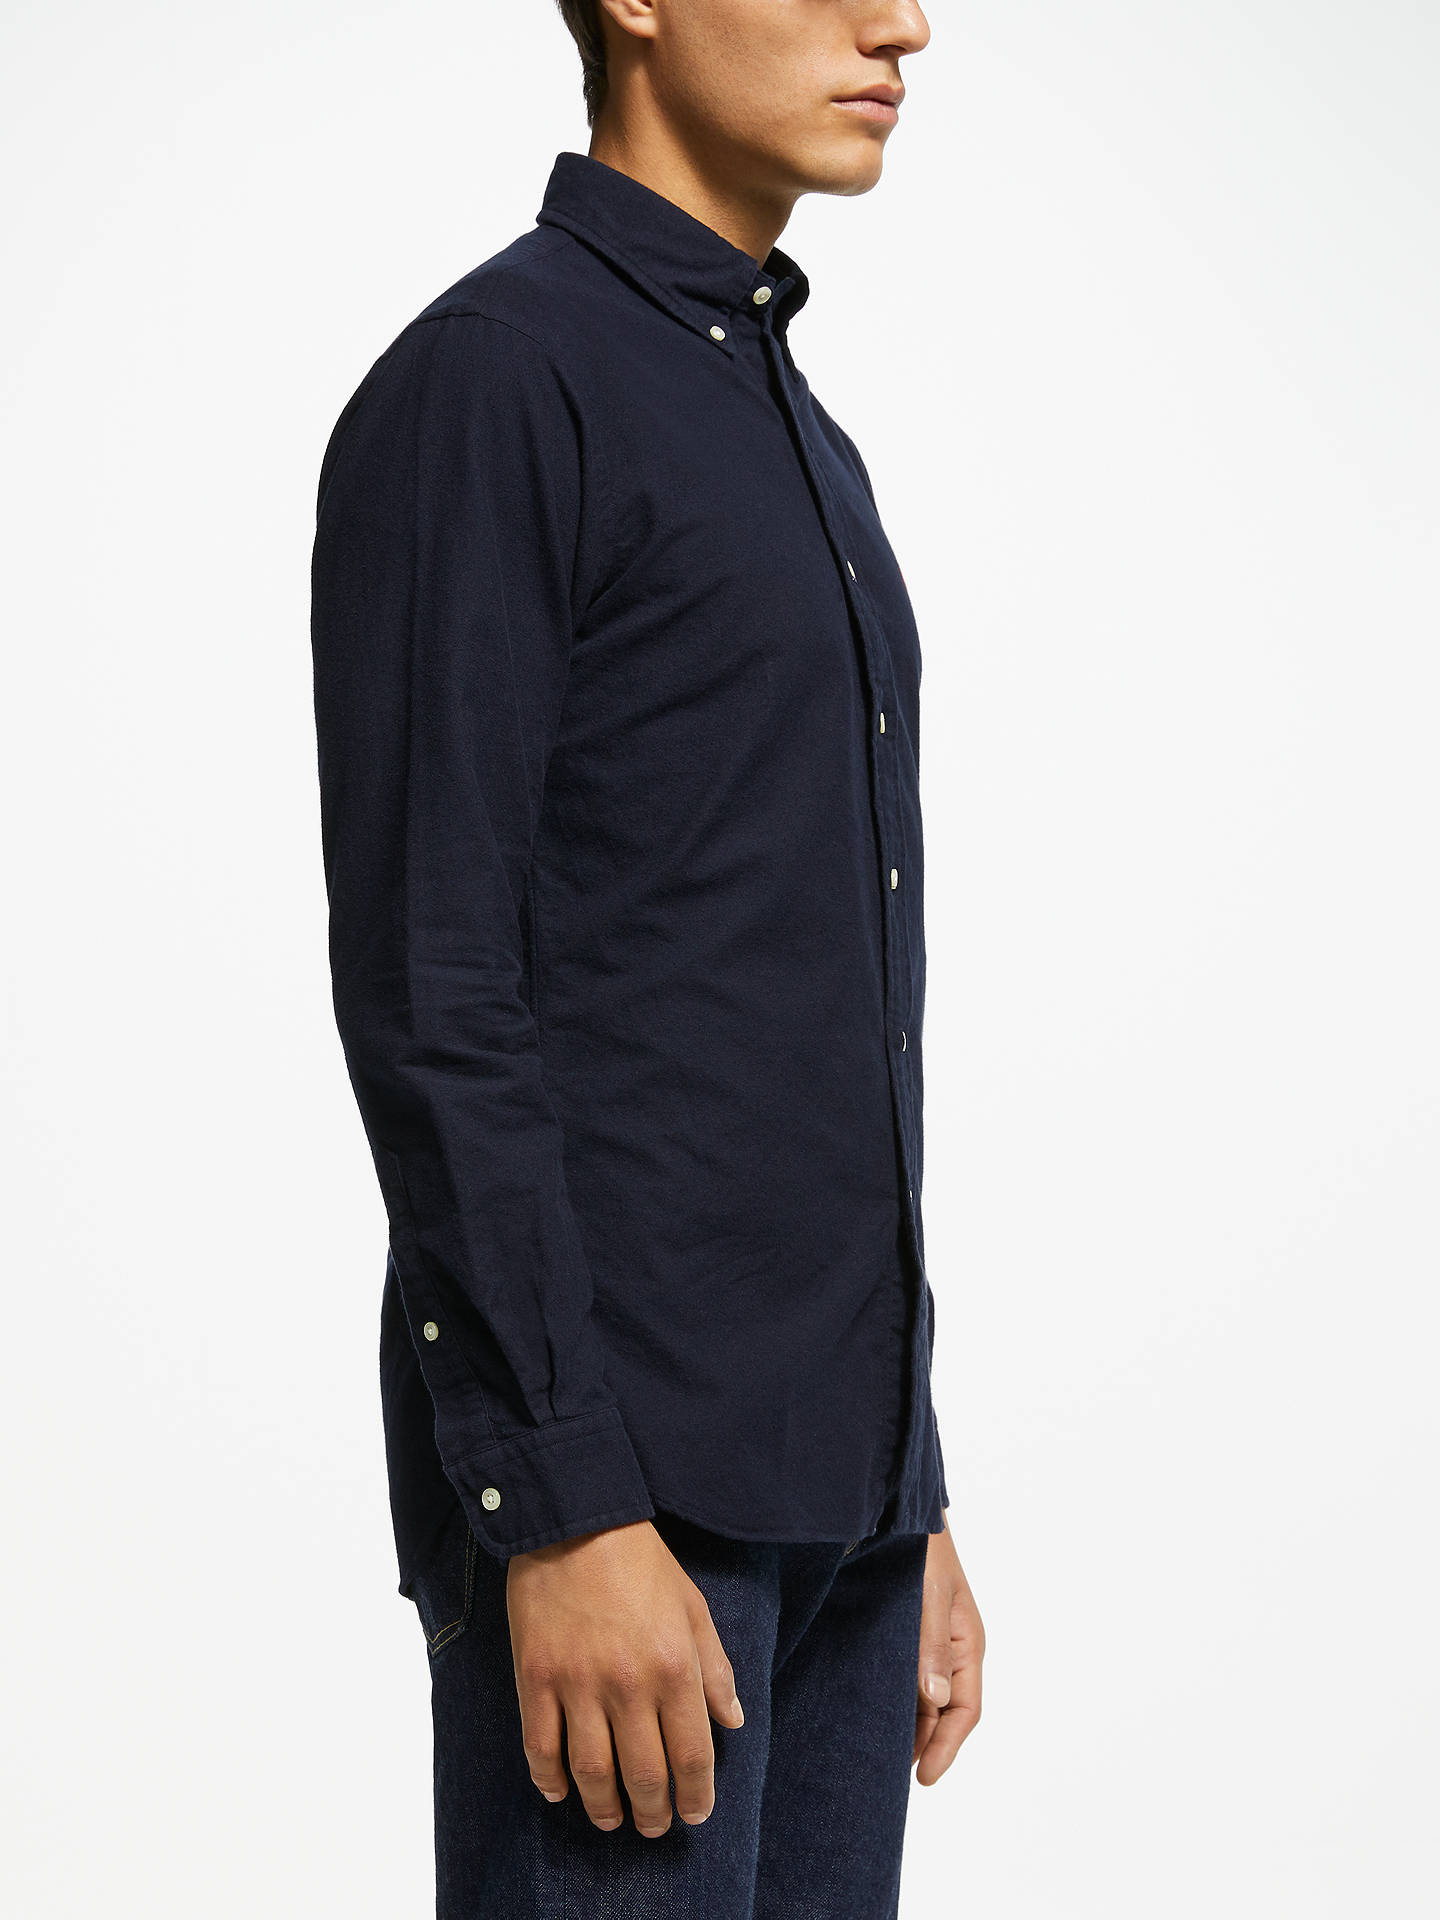 Buy Polo Ralph Lauren Brushed Cotton Shirt, Navy, M Online at johnlewis.com